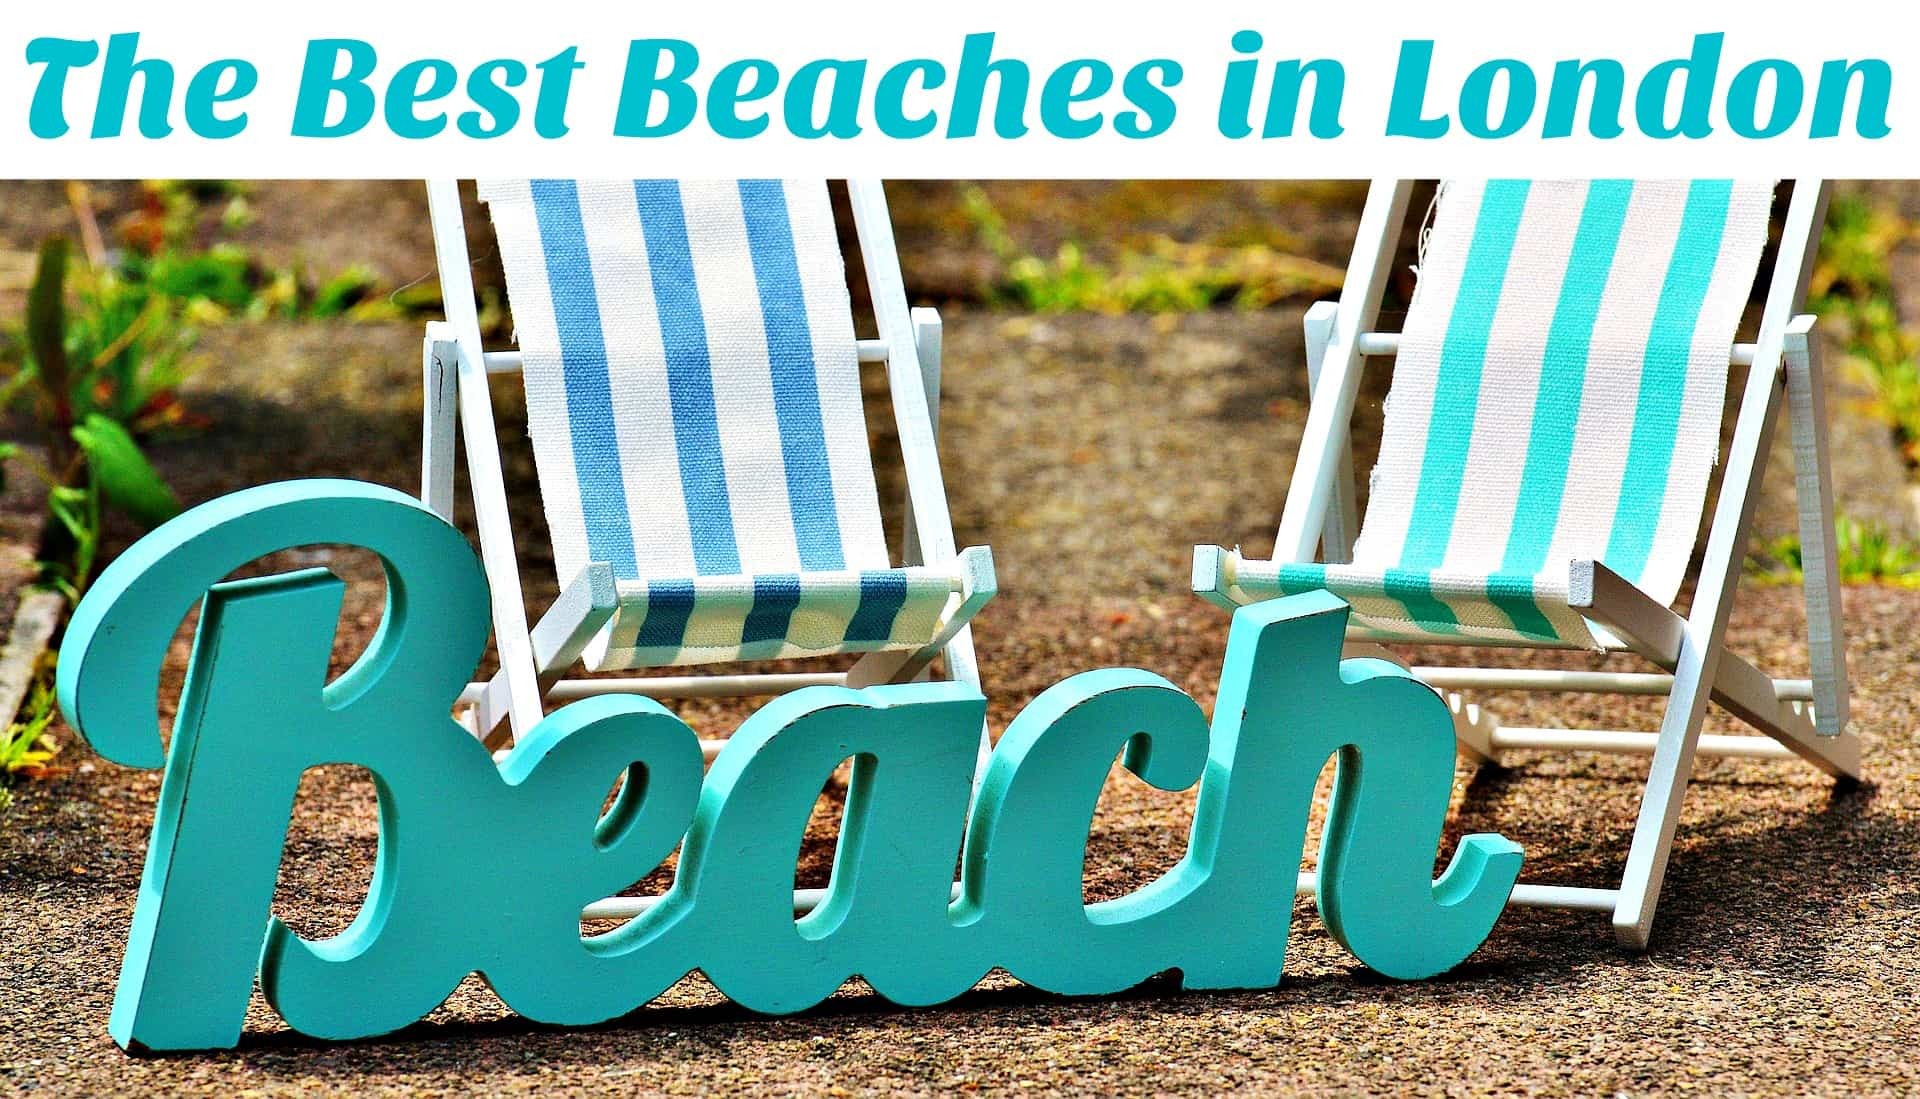 The Best Urban Beaches in London